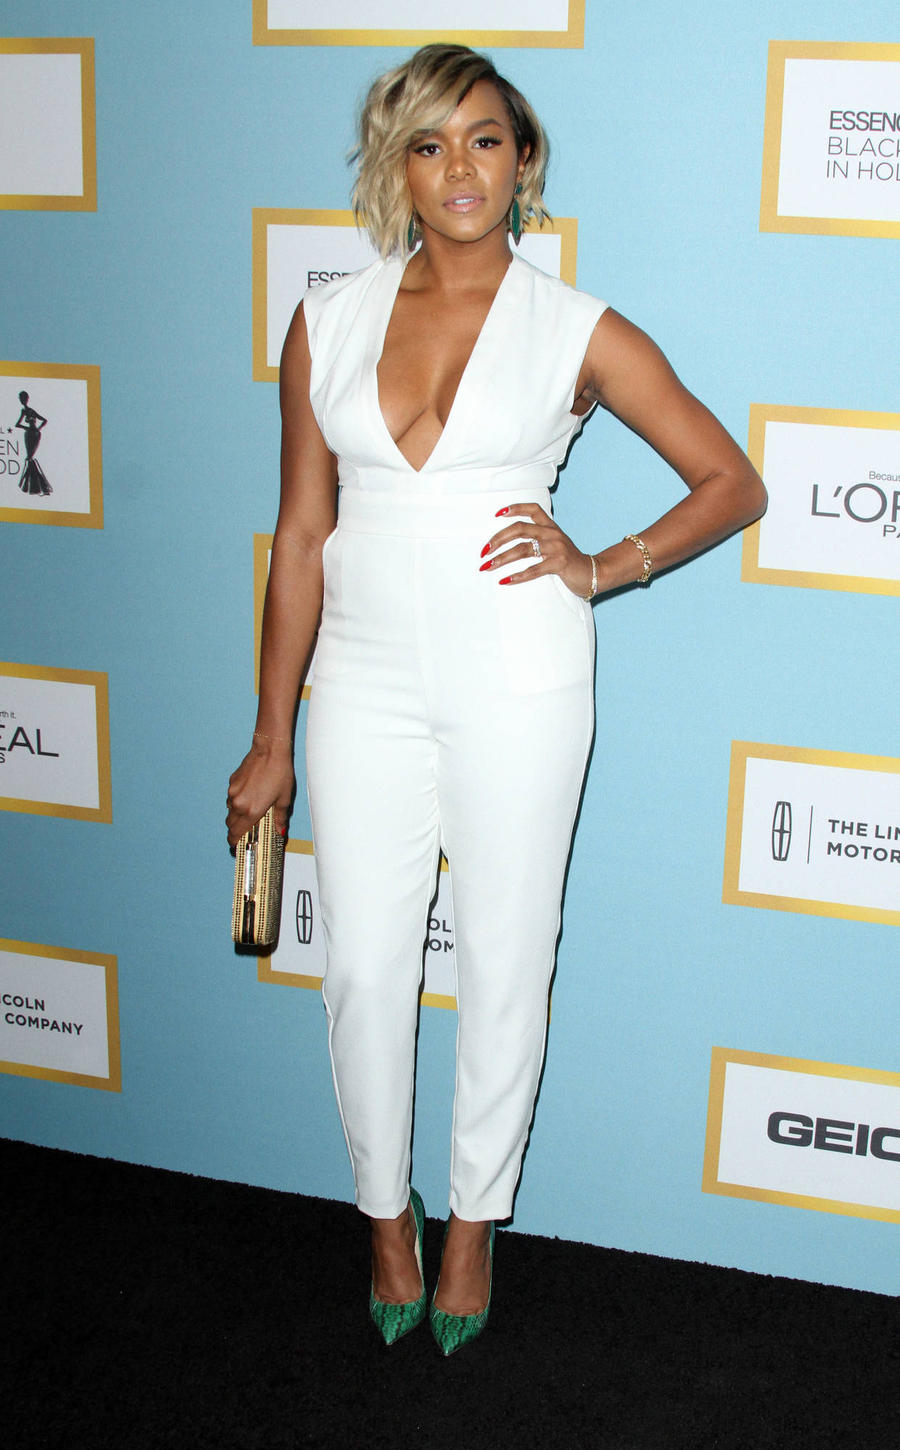 Letoya Luckett Is Divorced - Report